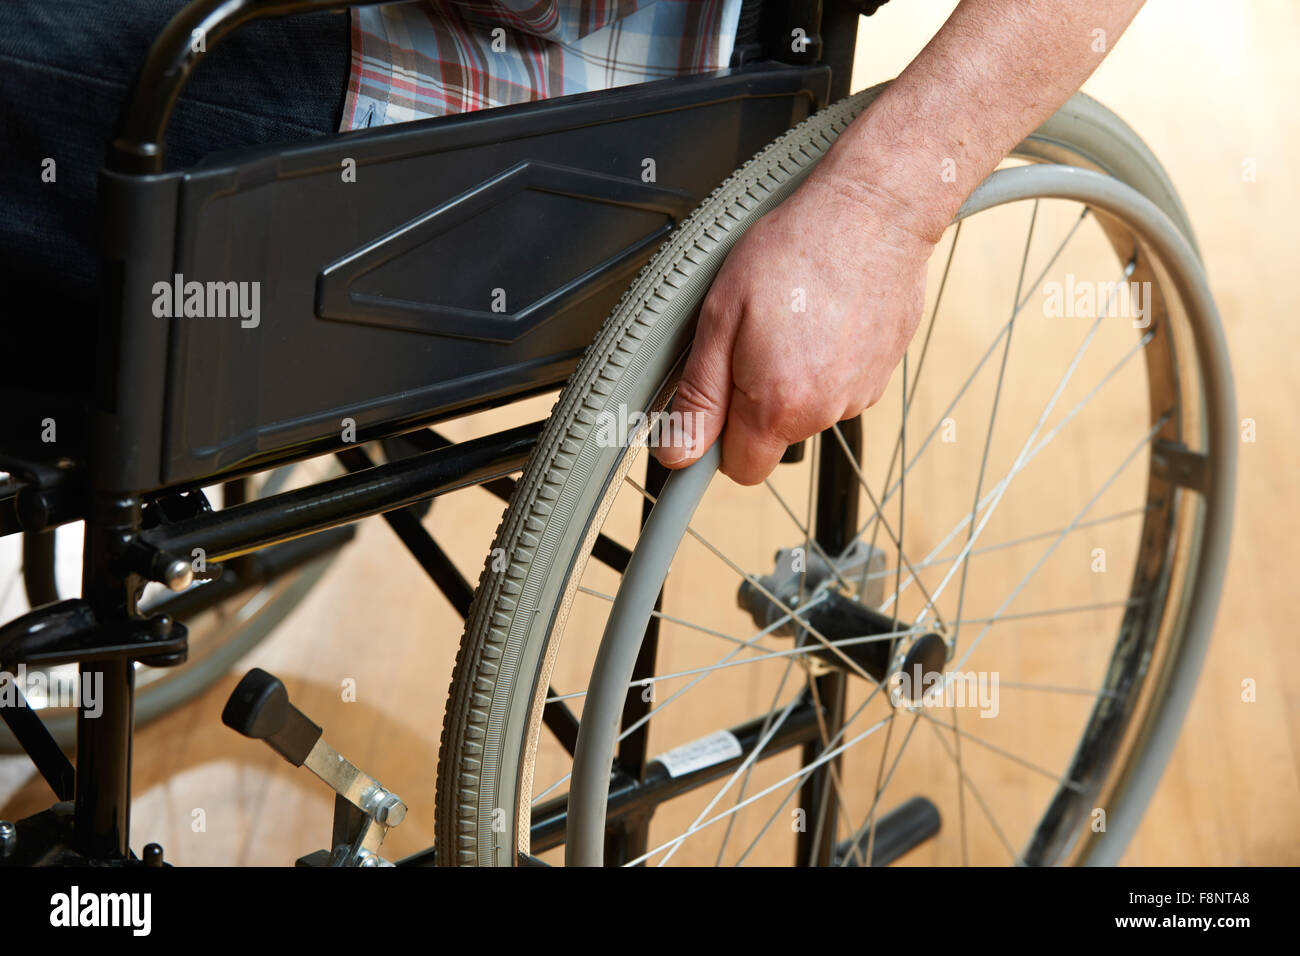 Close Up Of Man's Hands Pushing Wheelchair - Stock Image